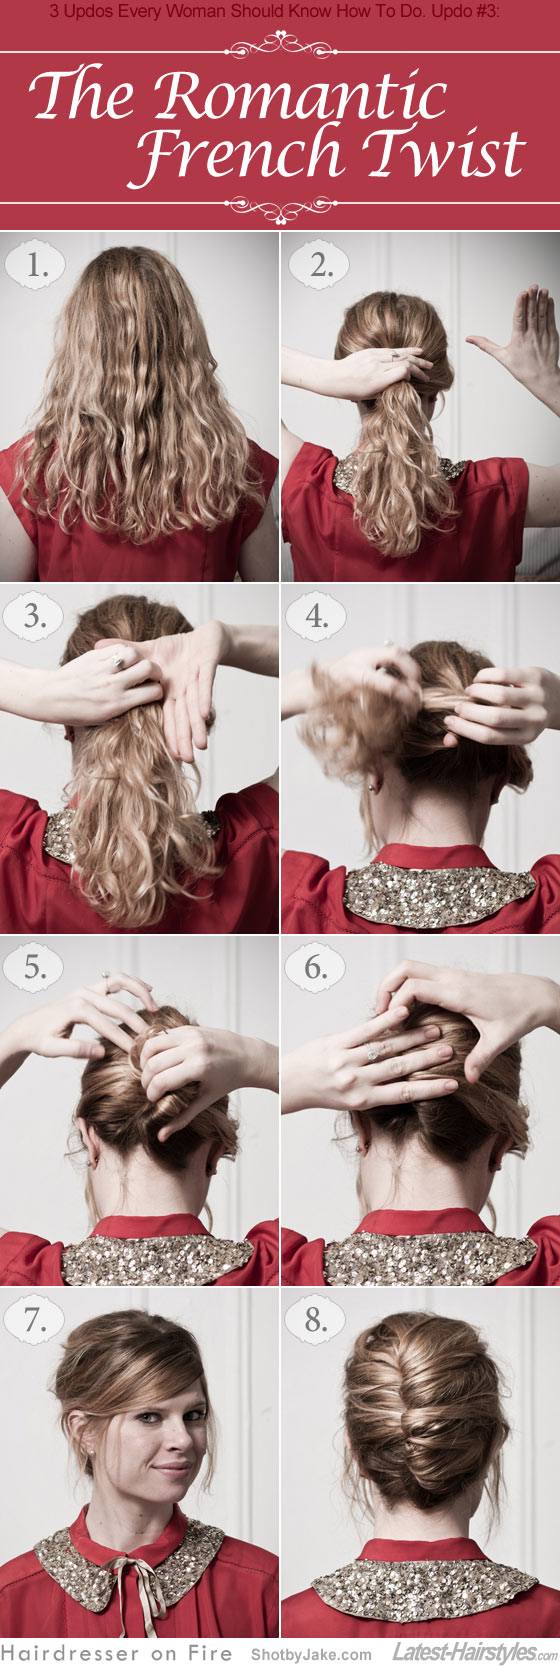 3 Updos Every Woman Should Know How To Do. The Romantic French Twist